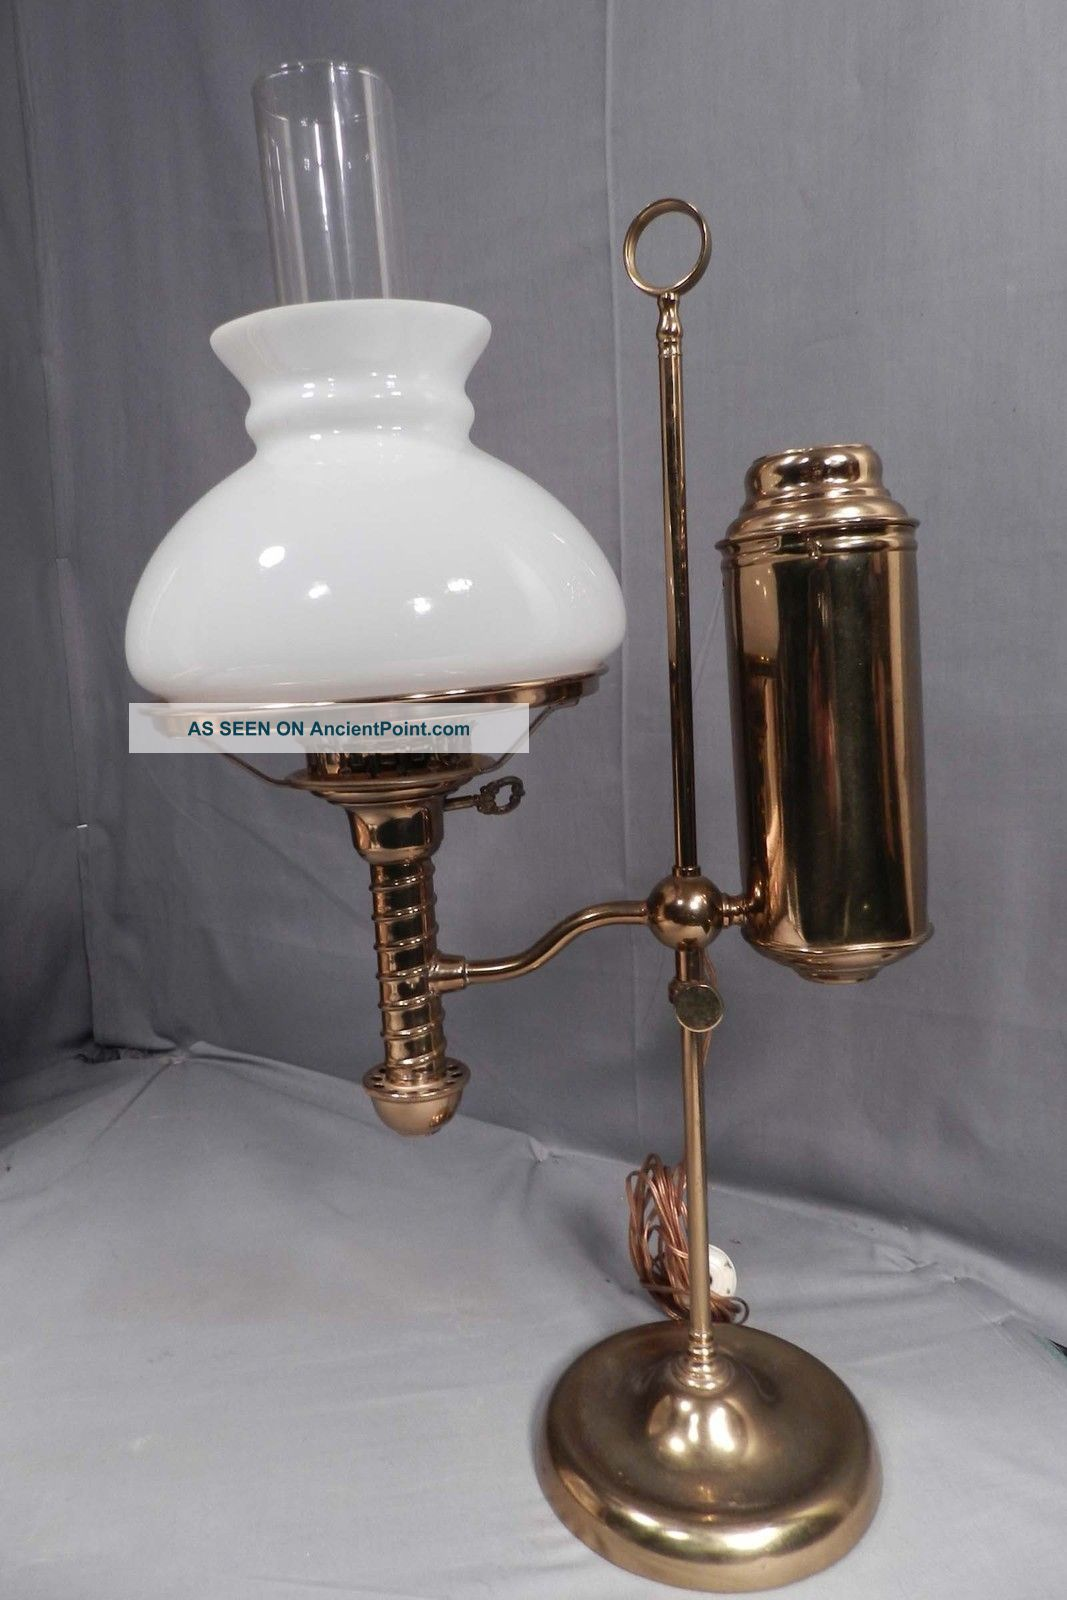 Antique Brass Desk Lamp Offers A Dignified Friendly Look